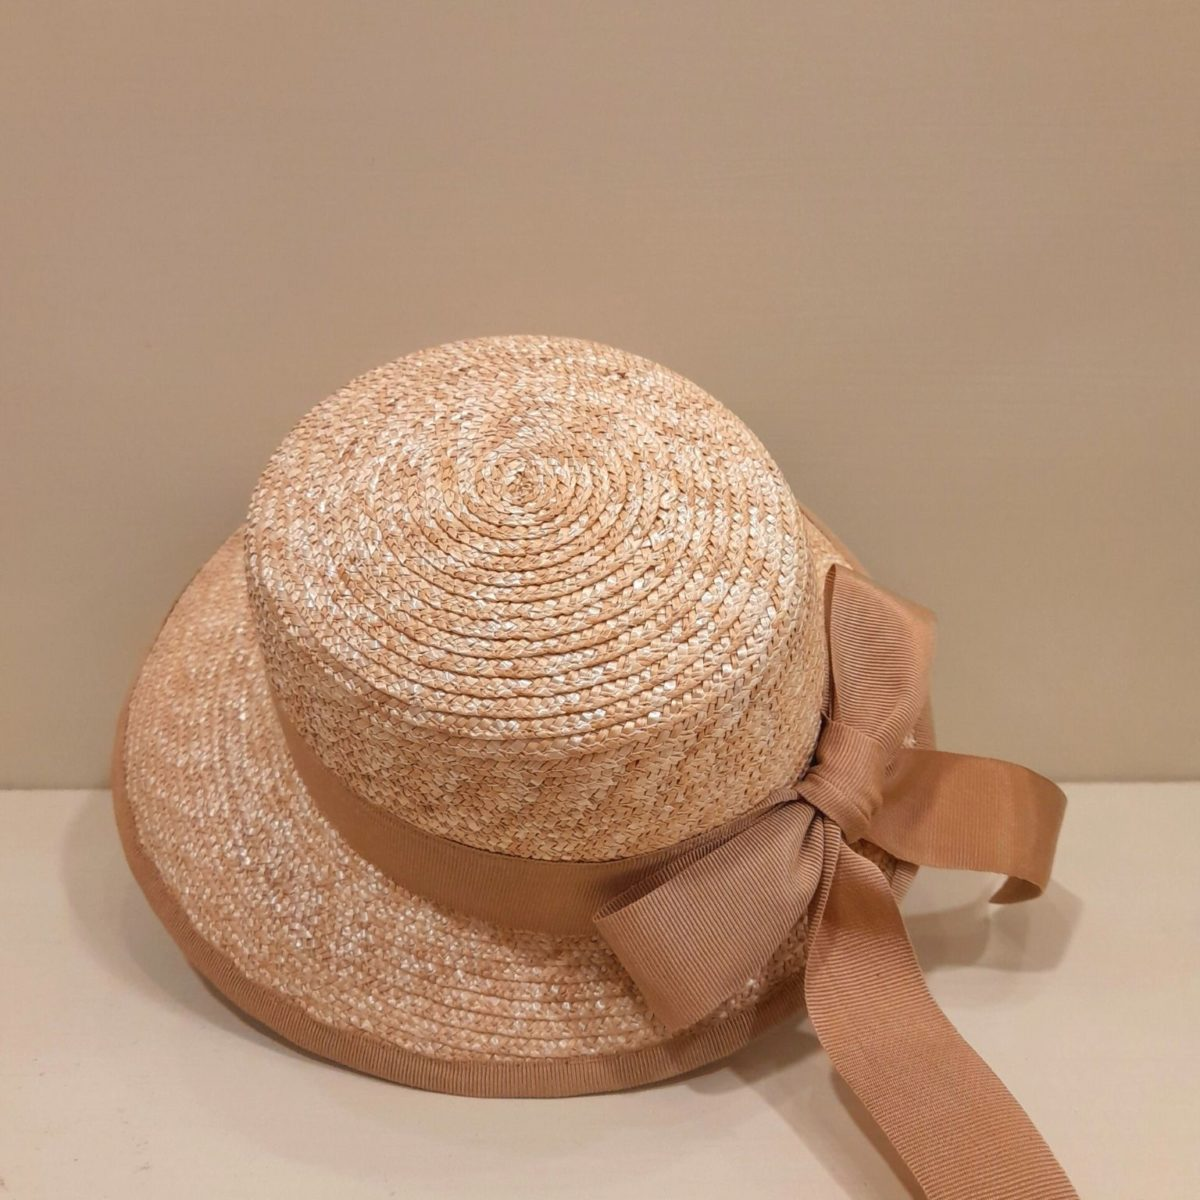 Straw Visor Hat With Beige Bow